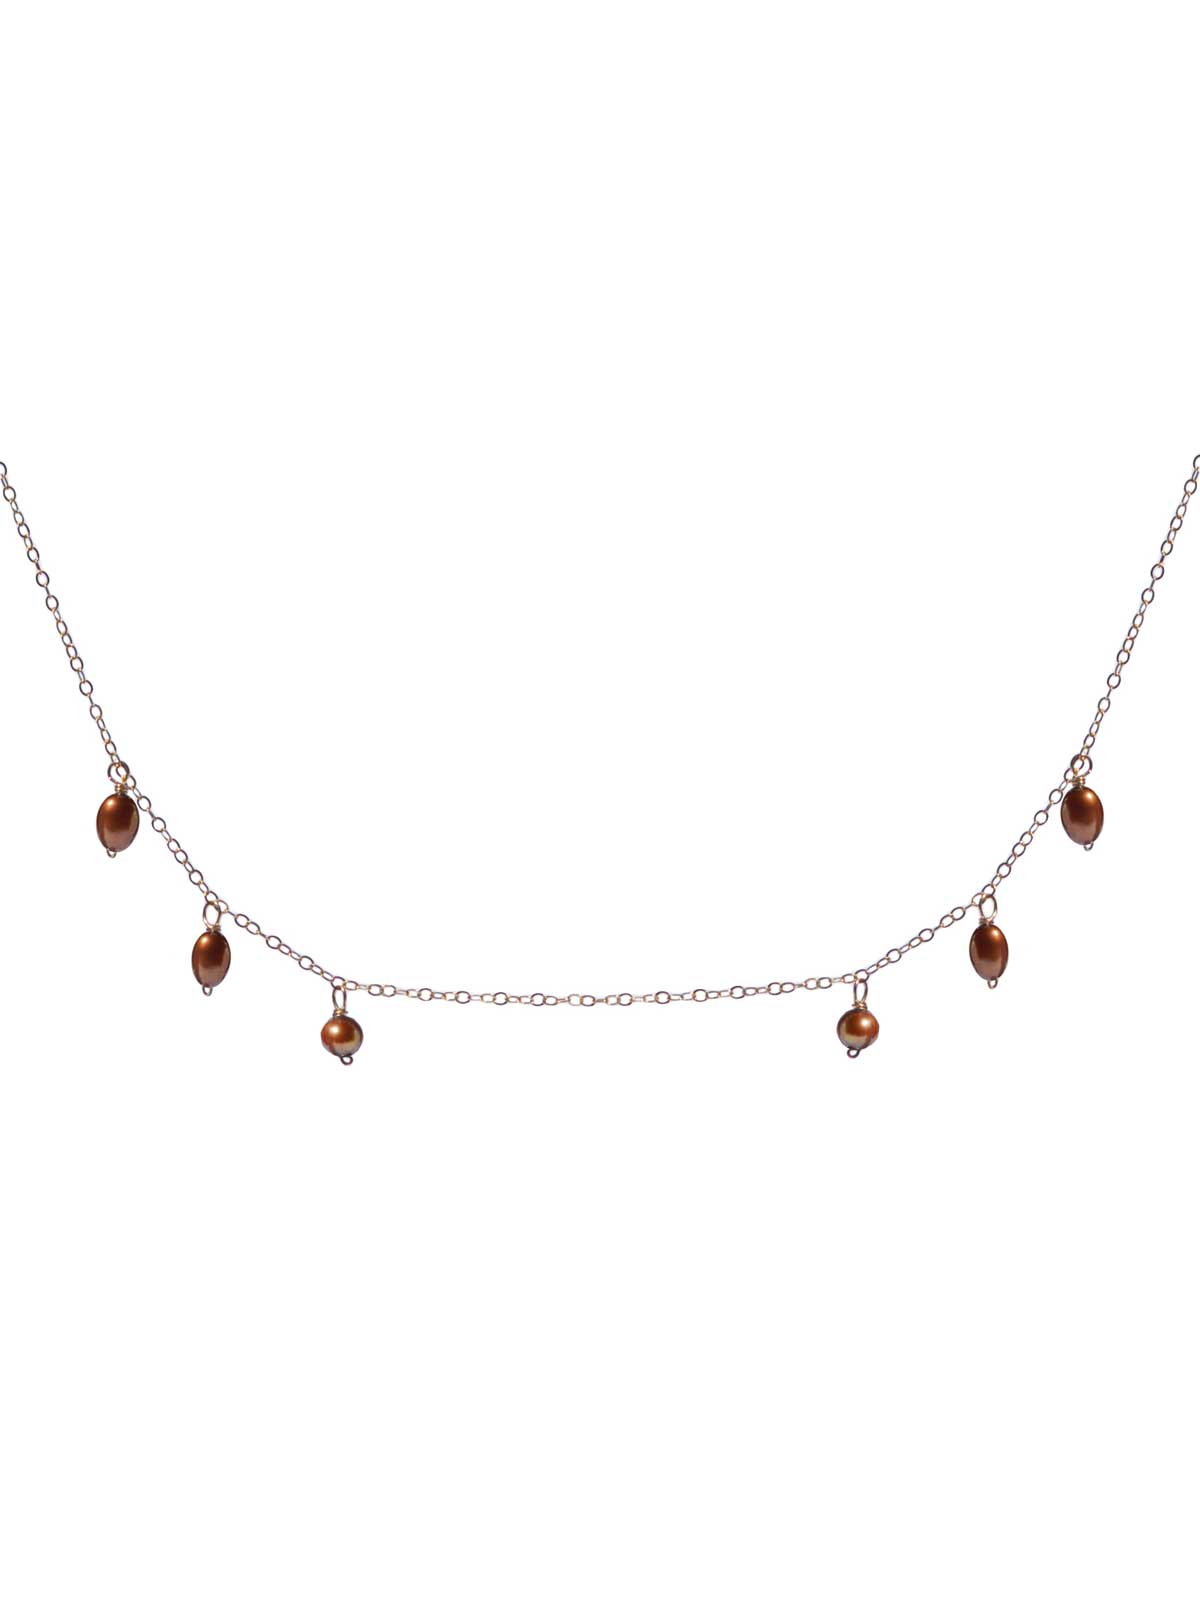 Necklace in 14K Gold-filled chain bronze Freshwater Pearls